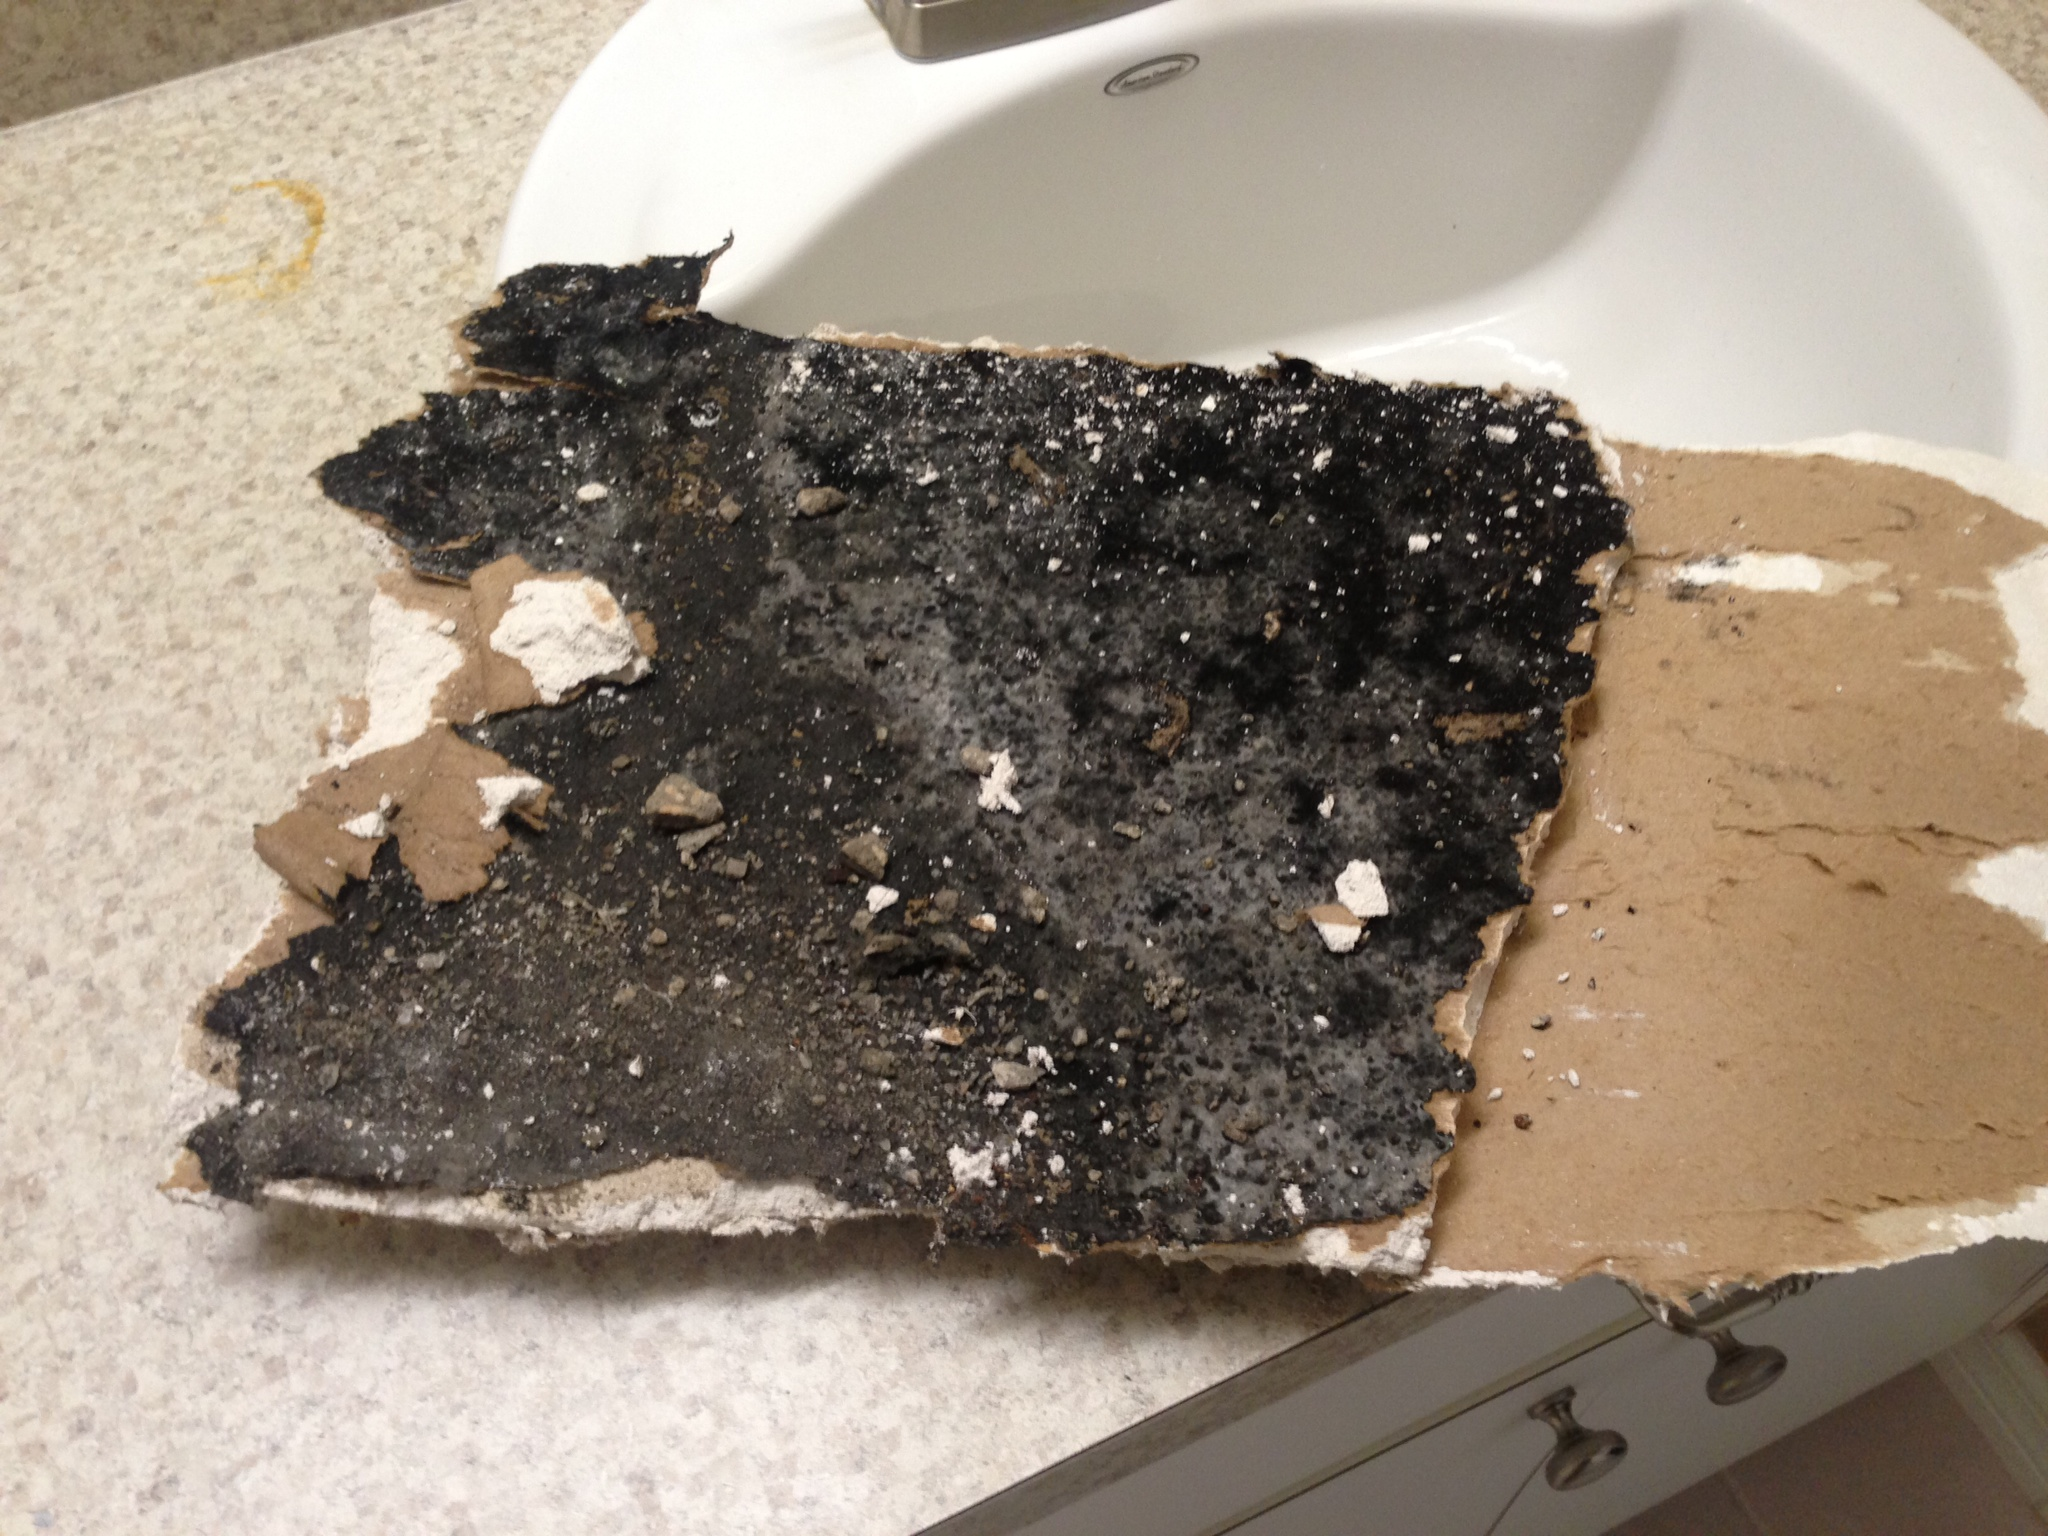 Black Mold In Walls black mold - is it toxic or non-toxic? | mold awareness